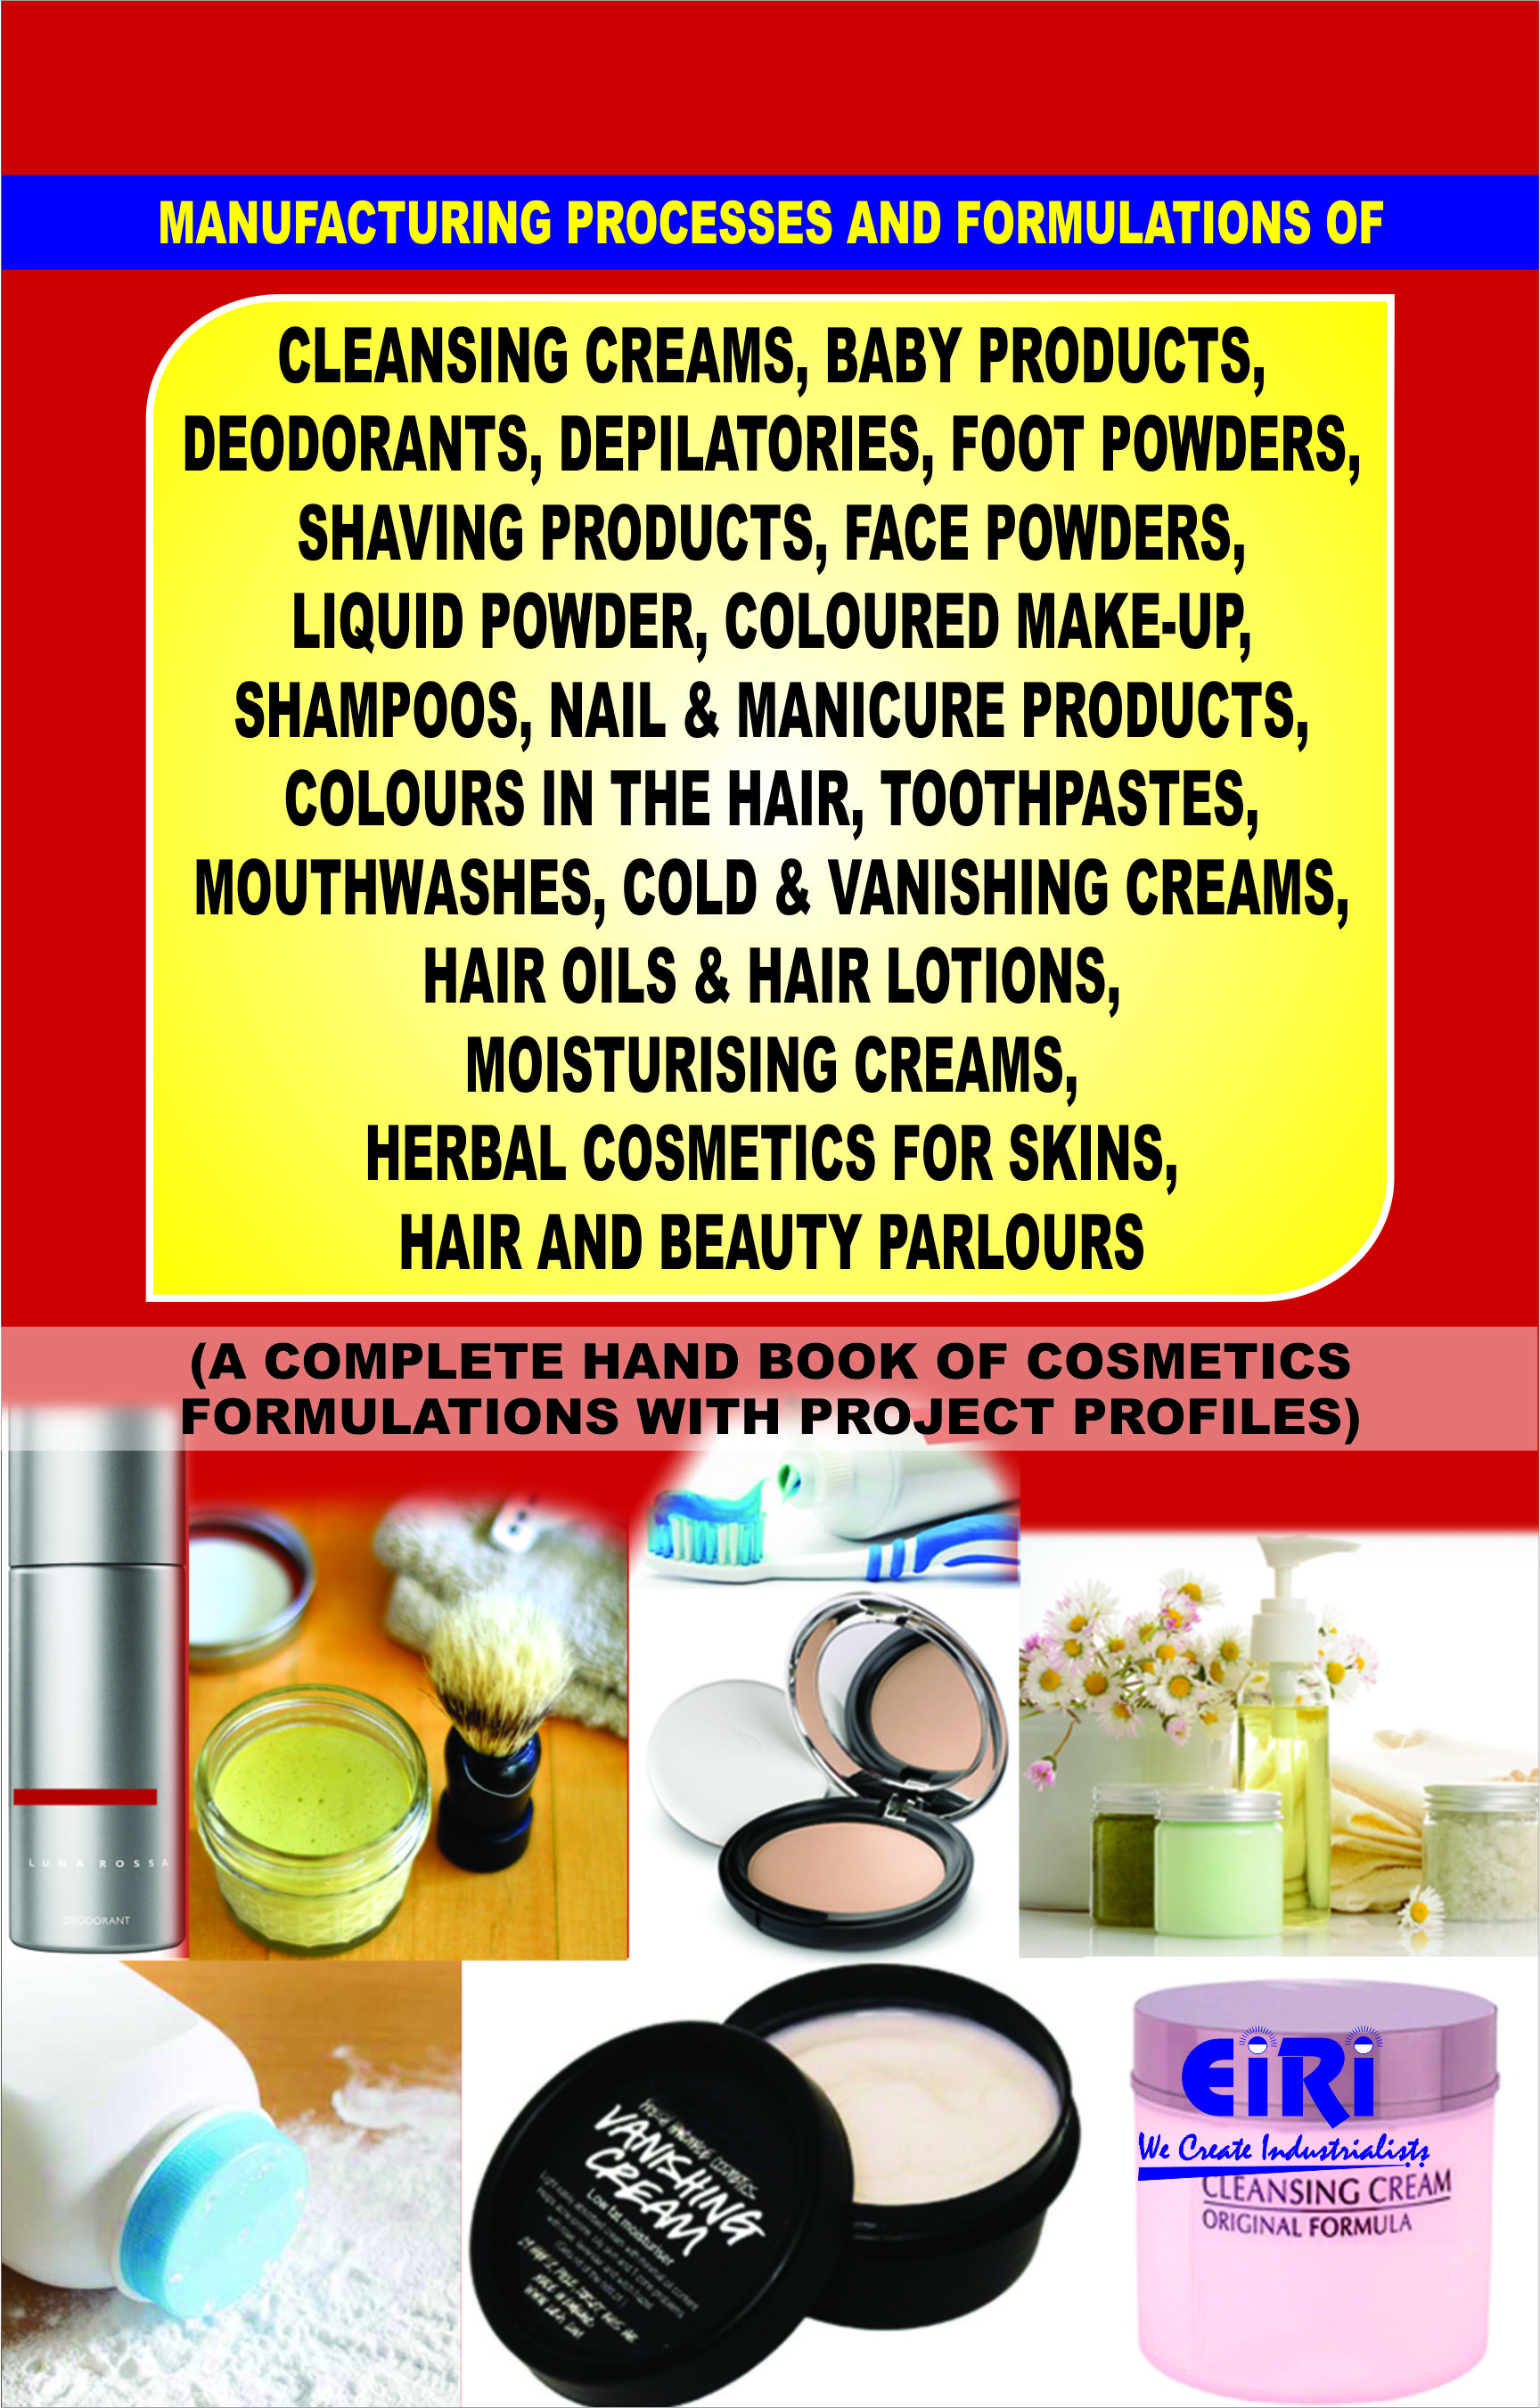 Manufacturing Processes and Formulations of Cleansing Creams, Baby  Products, Deodorants, Depilatories, Foot Powders, Shaving Products, Face  Powders,